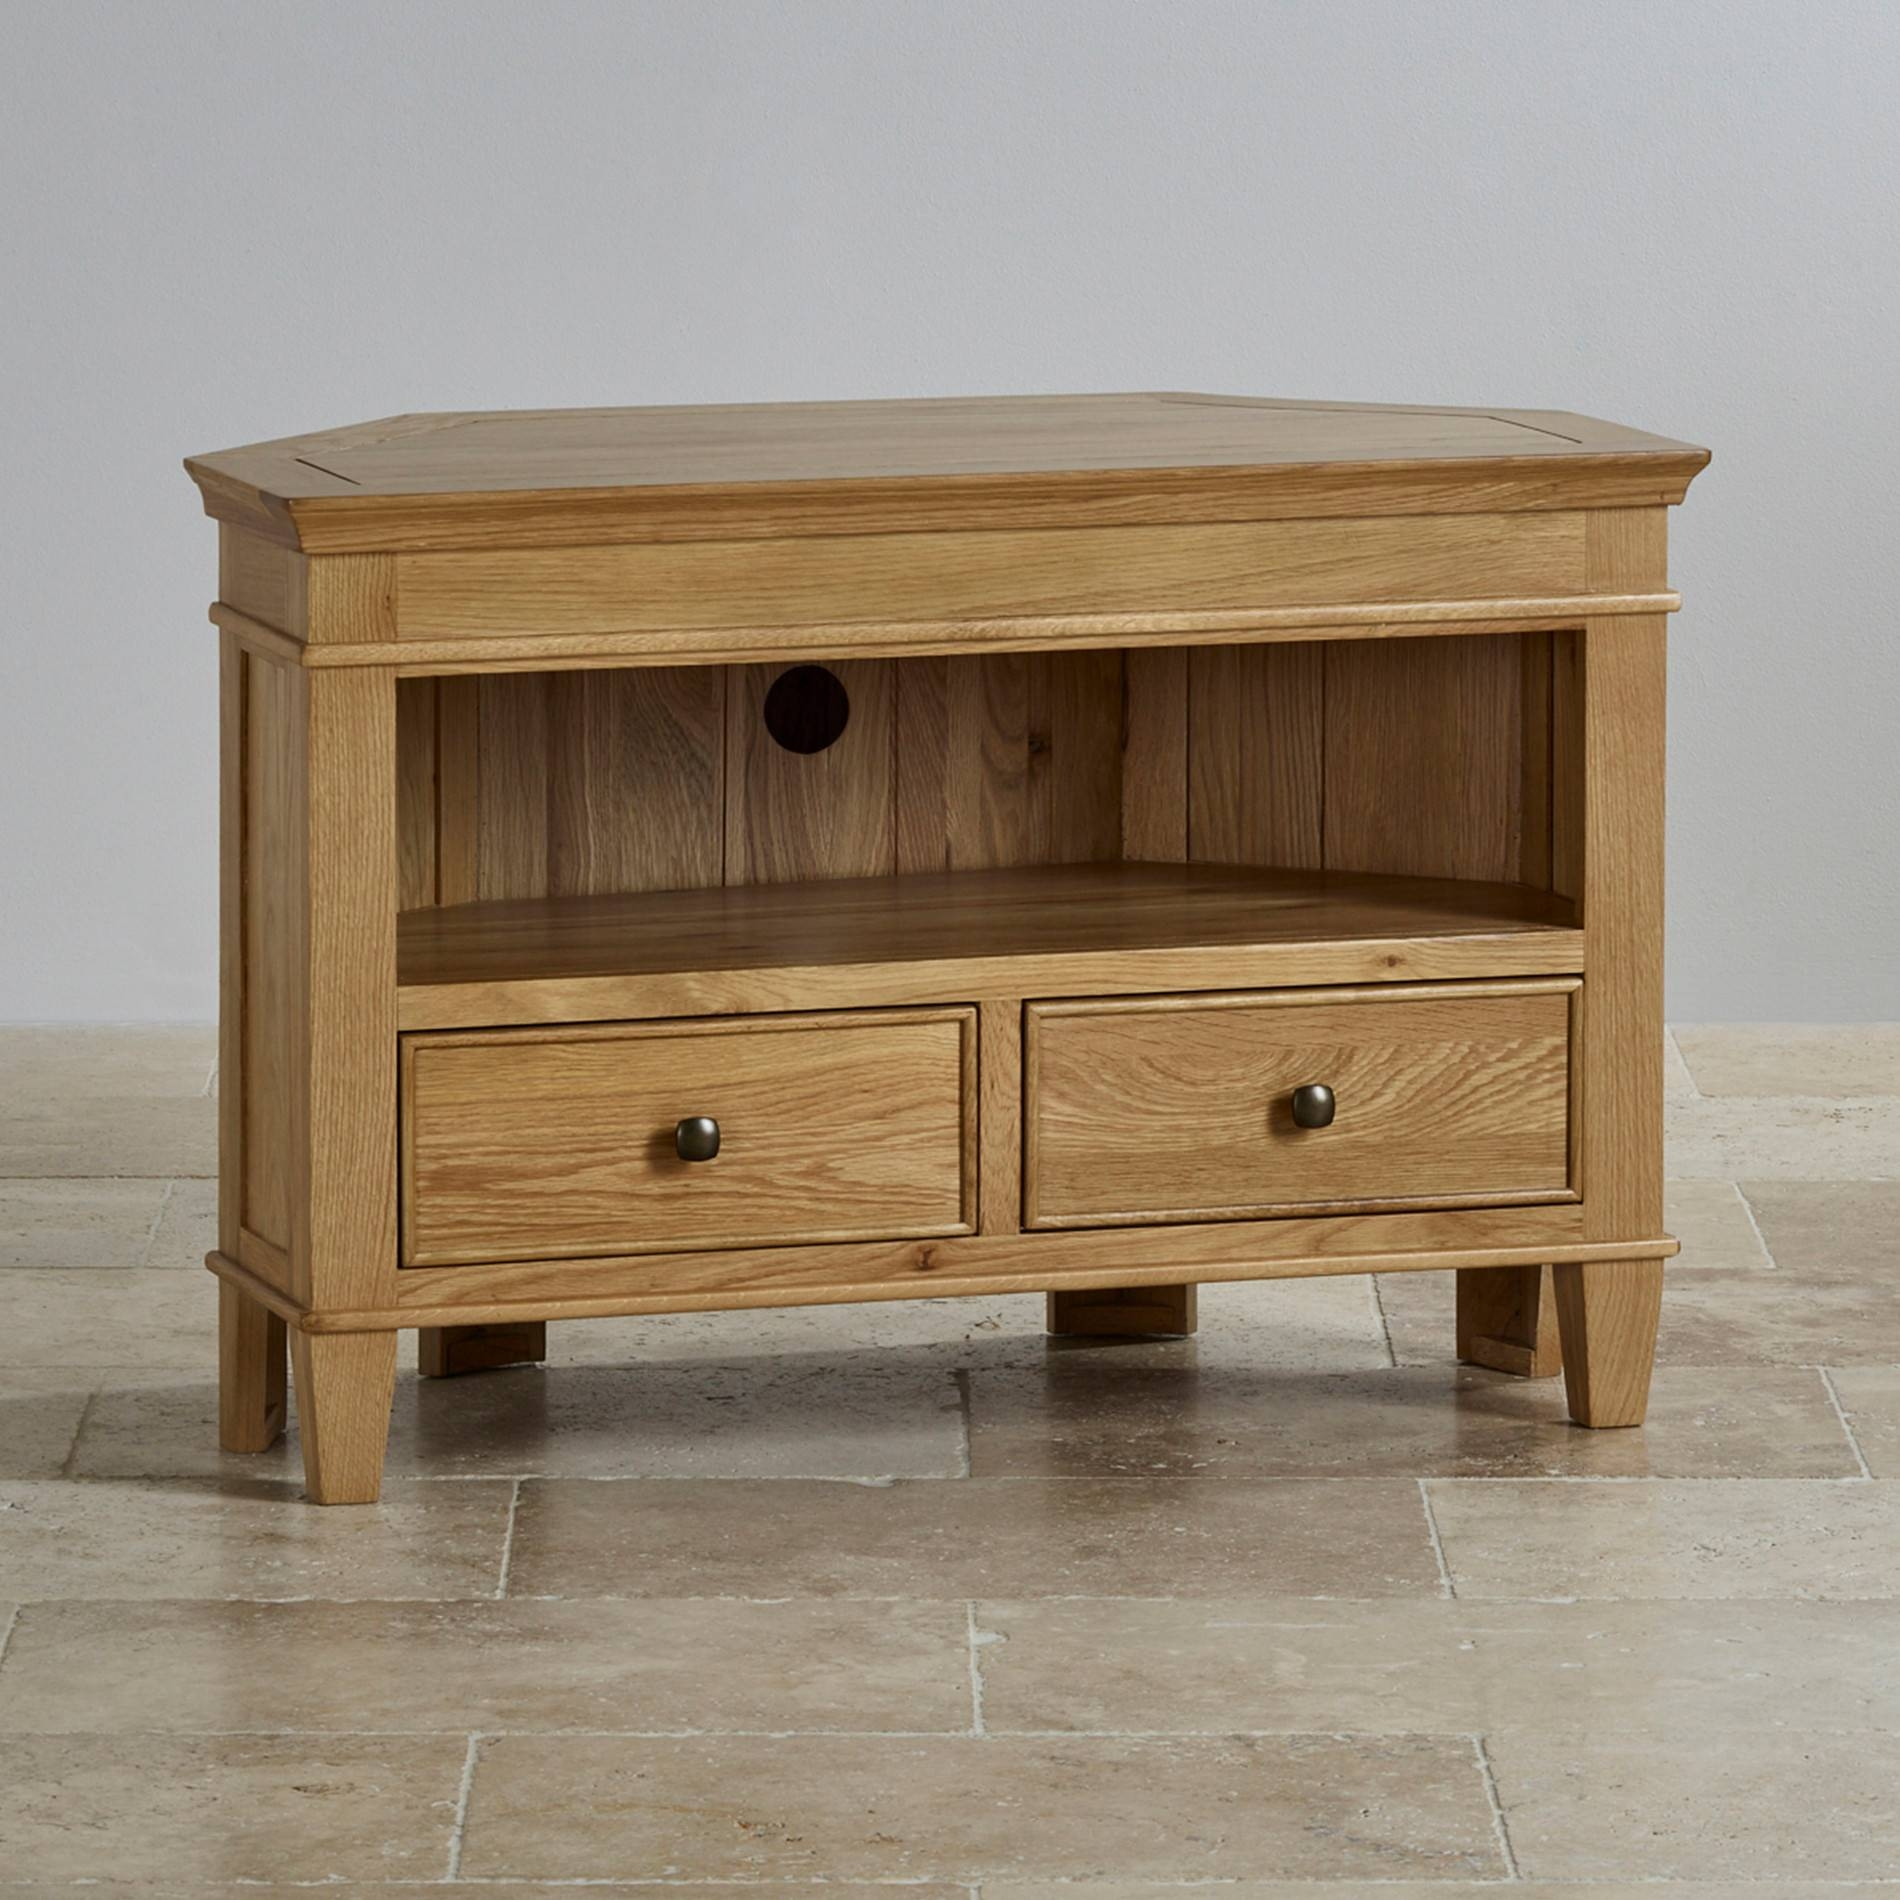 Classic Corner Tv Cabinet In Solid Oak | Oak Furniture Land with Solid Wood Corner Tv Cabinets (Image 3 of 15)